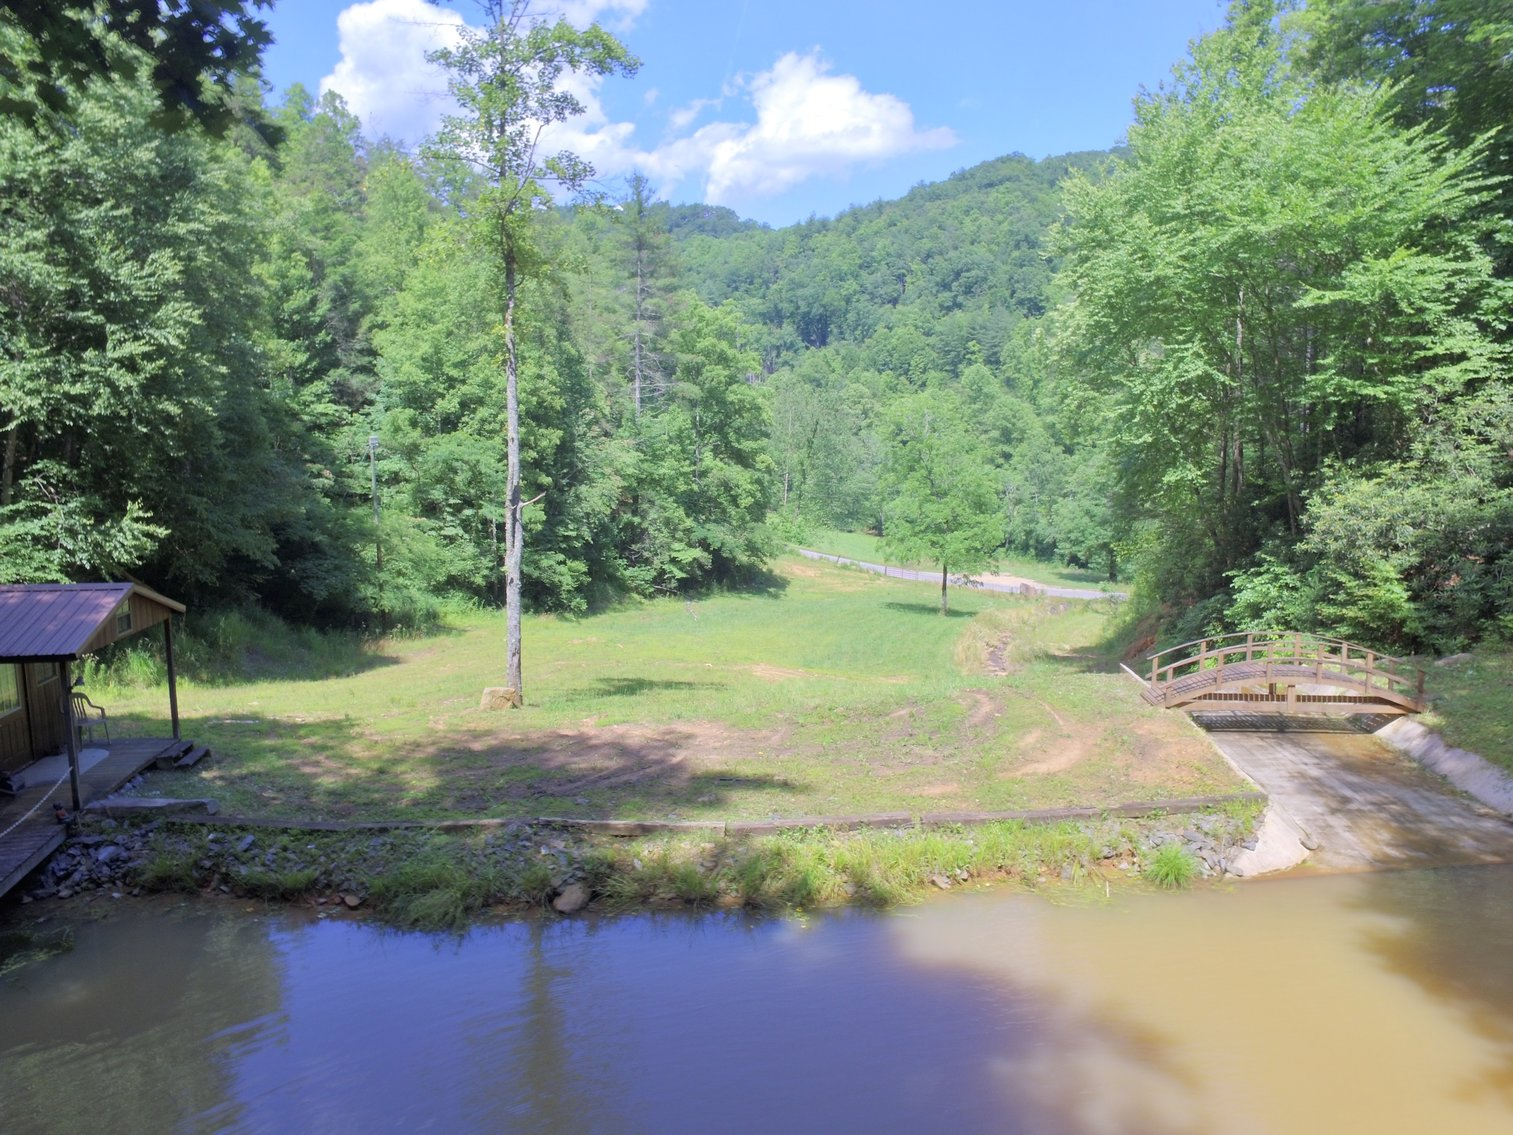 89.1 Acres off Sheets Gap Road in Wilkes County, NC